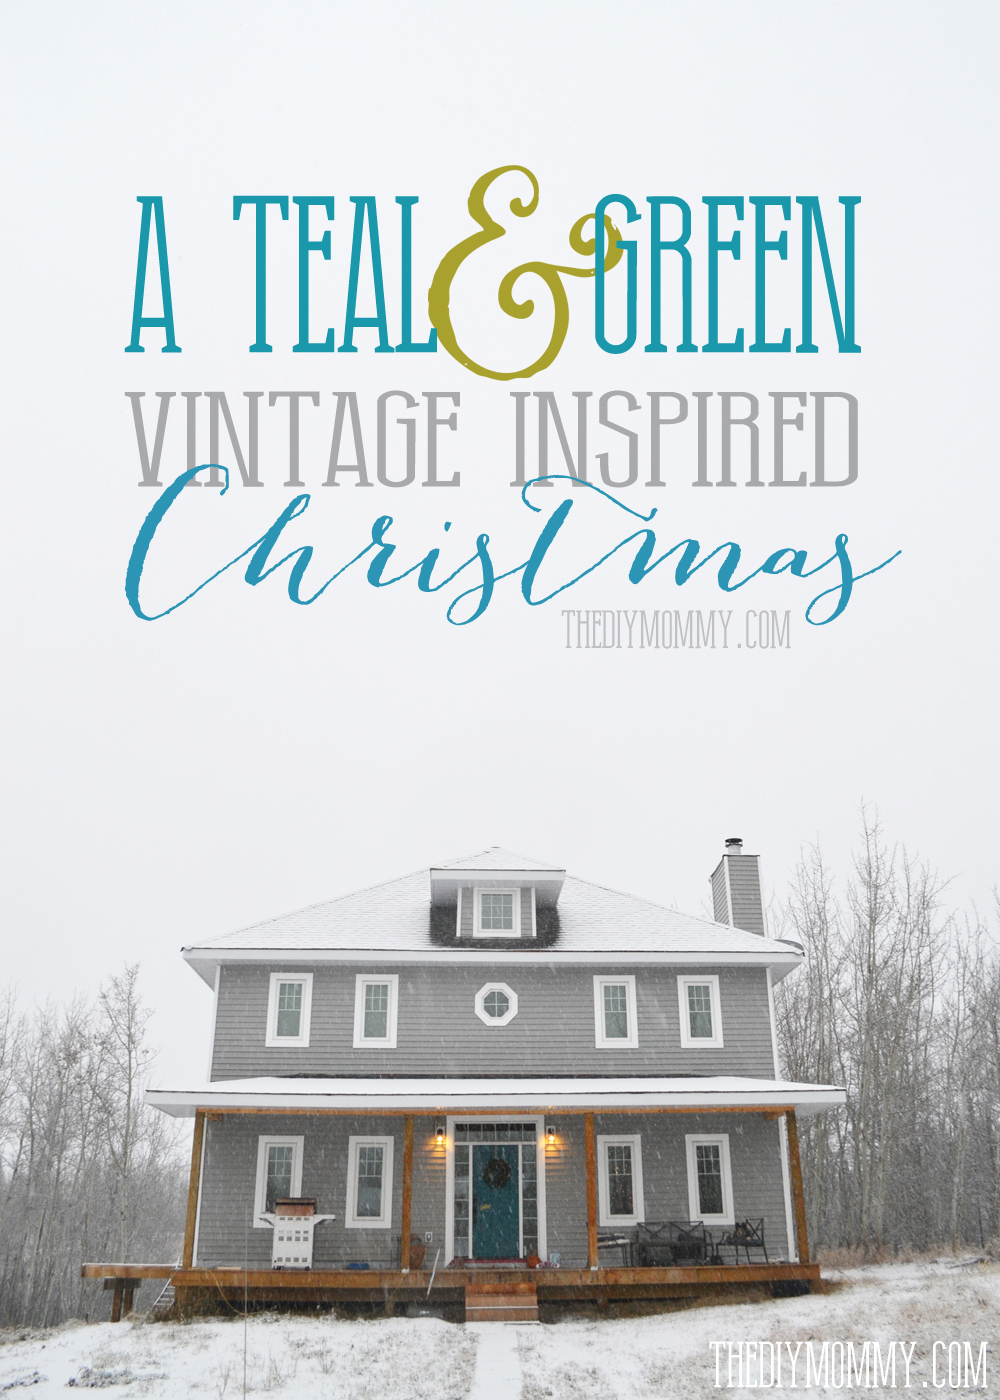 A-Teal-and-Green-Vintage-Inspired-Christmas